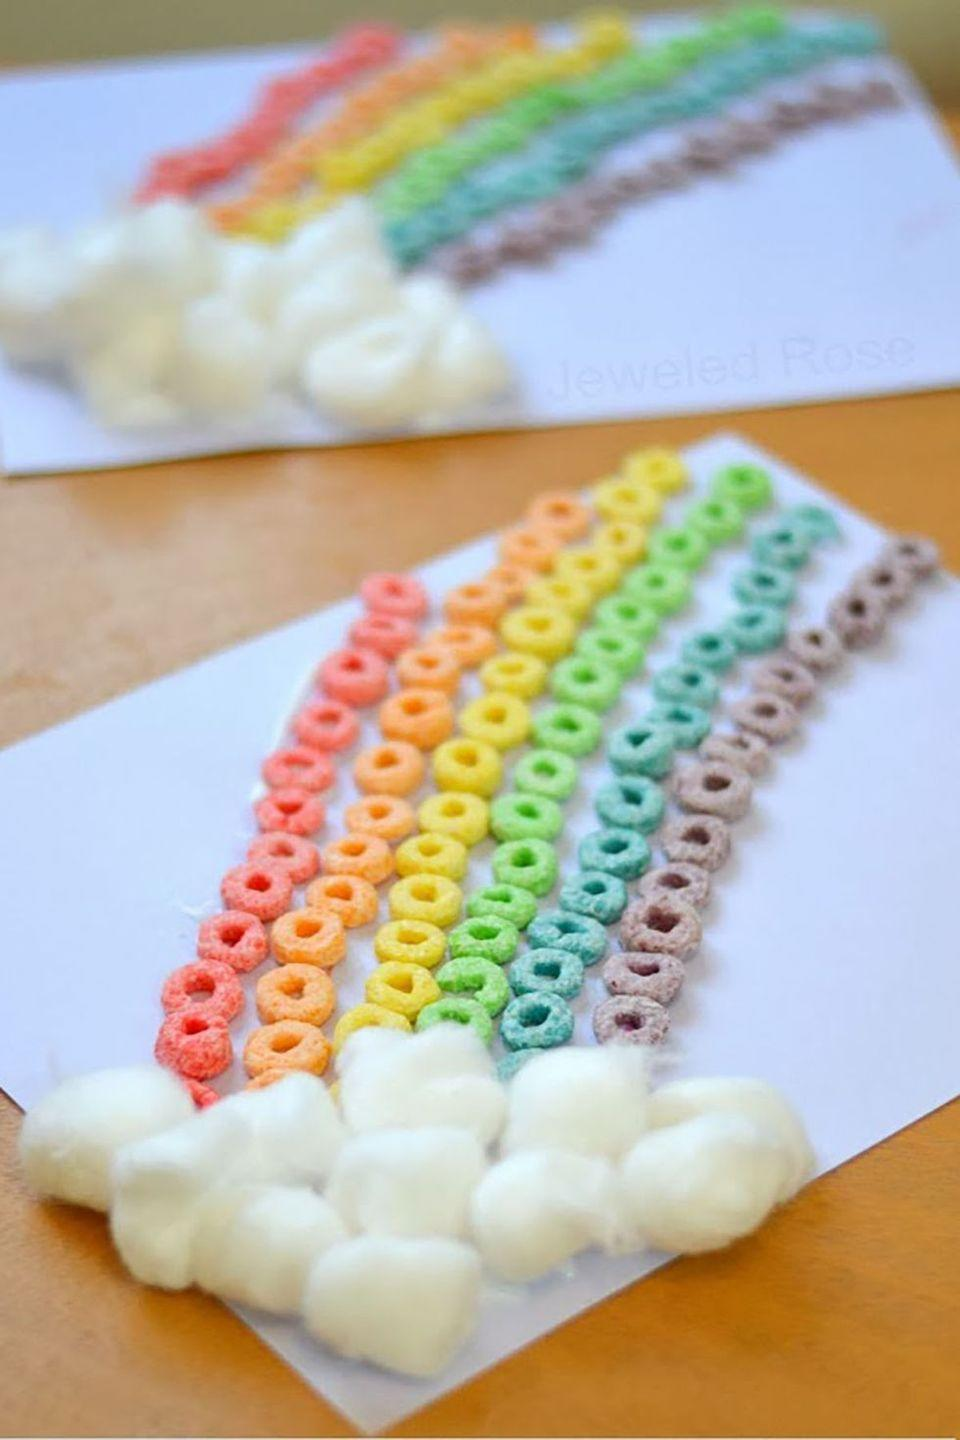 """<p>This fun craft is a great hands-on project for kids. Plus, some of the supplies make great snacks while you're crafting. </p><p><em>Get the tutorial at <a href=""""https://jennyirvine.com/easy-st-patricks-day-crafts-for-kids-with-supply-list/"""" rel=""""nofollow noopener"""" target=""""_blank"""" data-ylk=""""slk:Jenny Irvine"""" class=""""link rapid-noclick-resp"""">Jenny Irvine</a>. </em></p>"""